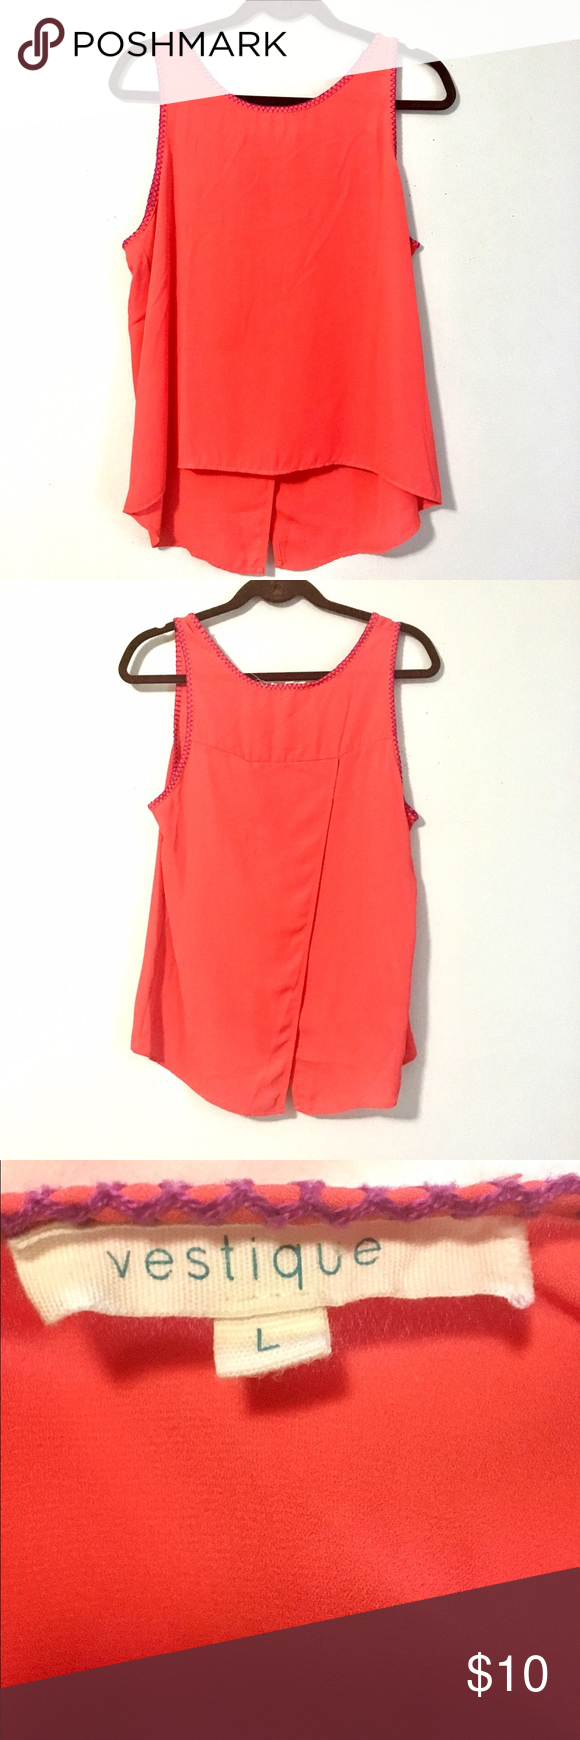 Coral Red Blouse Super cute chiffon slit-back top in coral red. Perfectly paired with white denim for spring and summer! Only worn once or twice, in excellent like-new condition. Purchased from Vestique boutique Vestique Tops